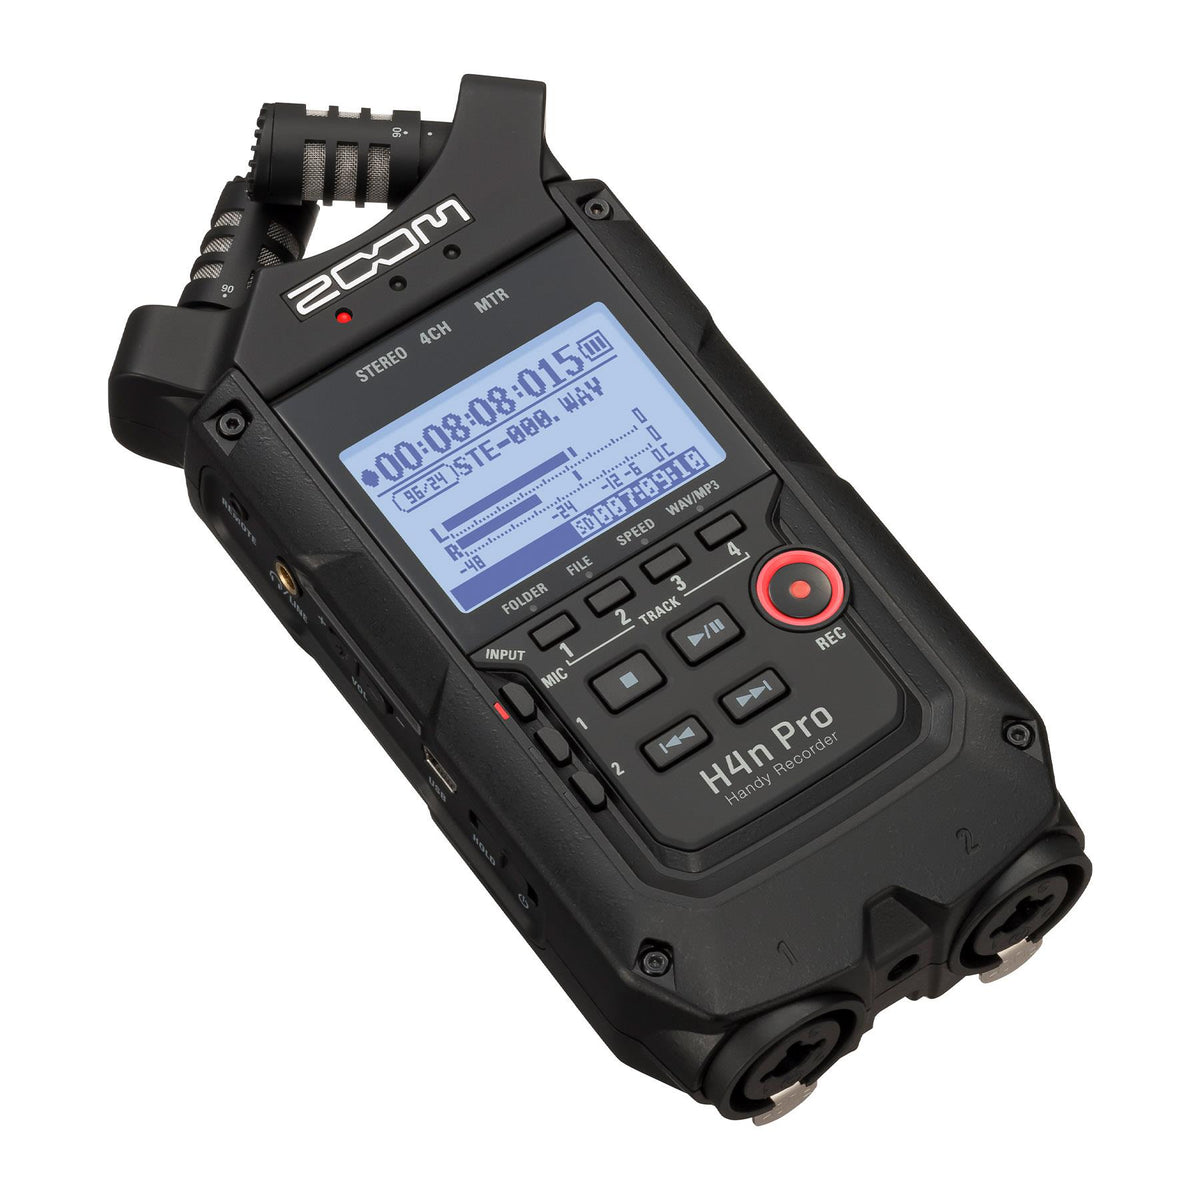 Zoom H4n Pro AB All Black Handy Recorder